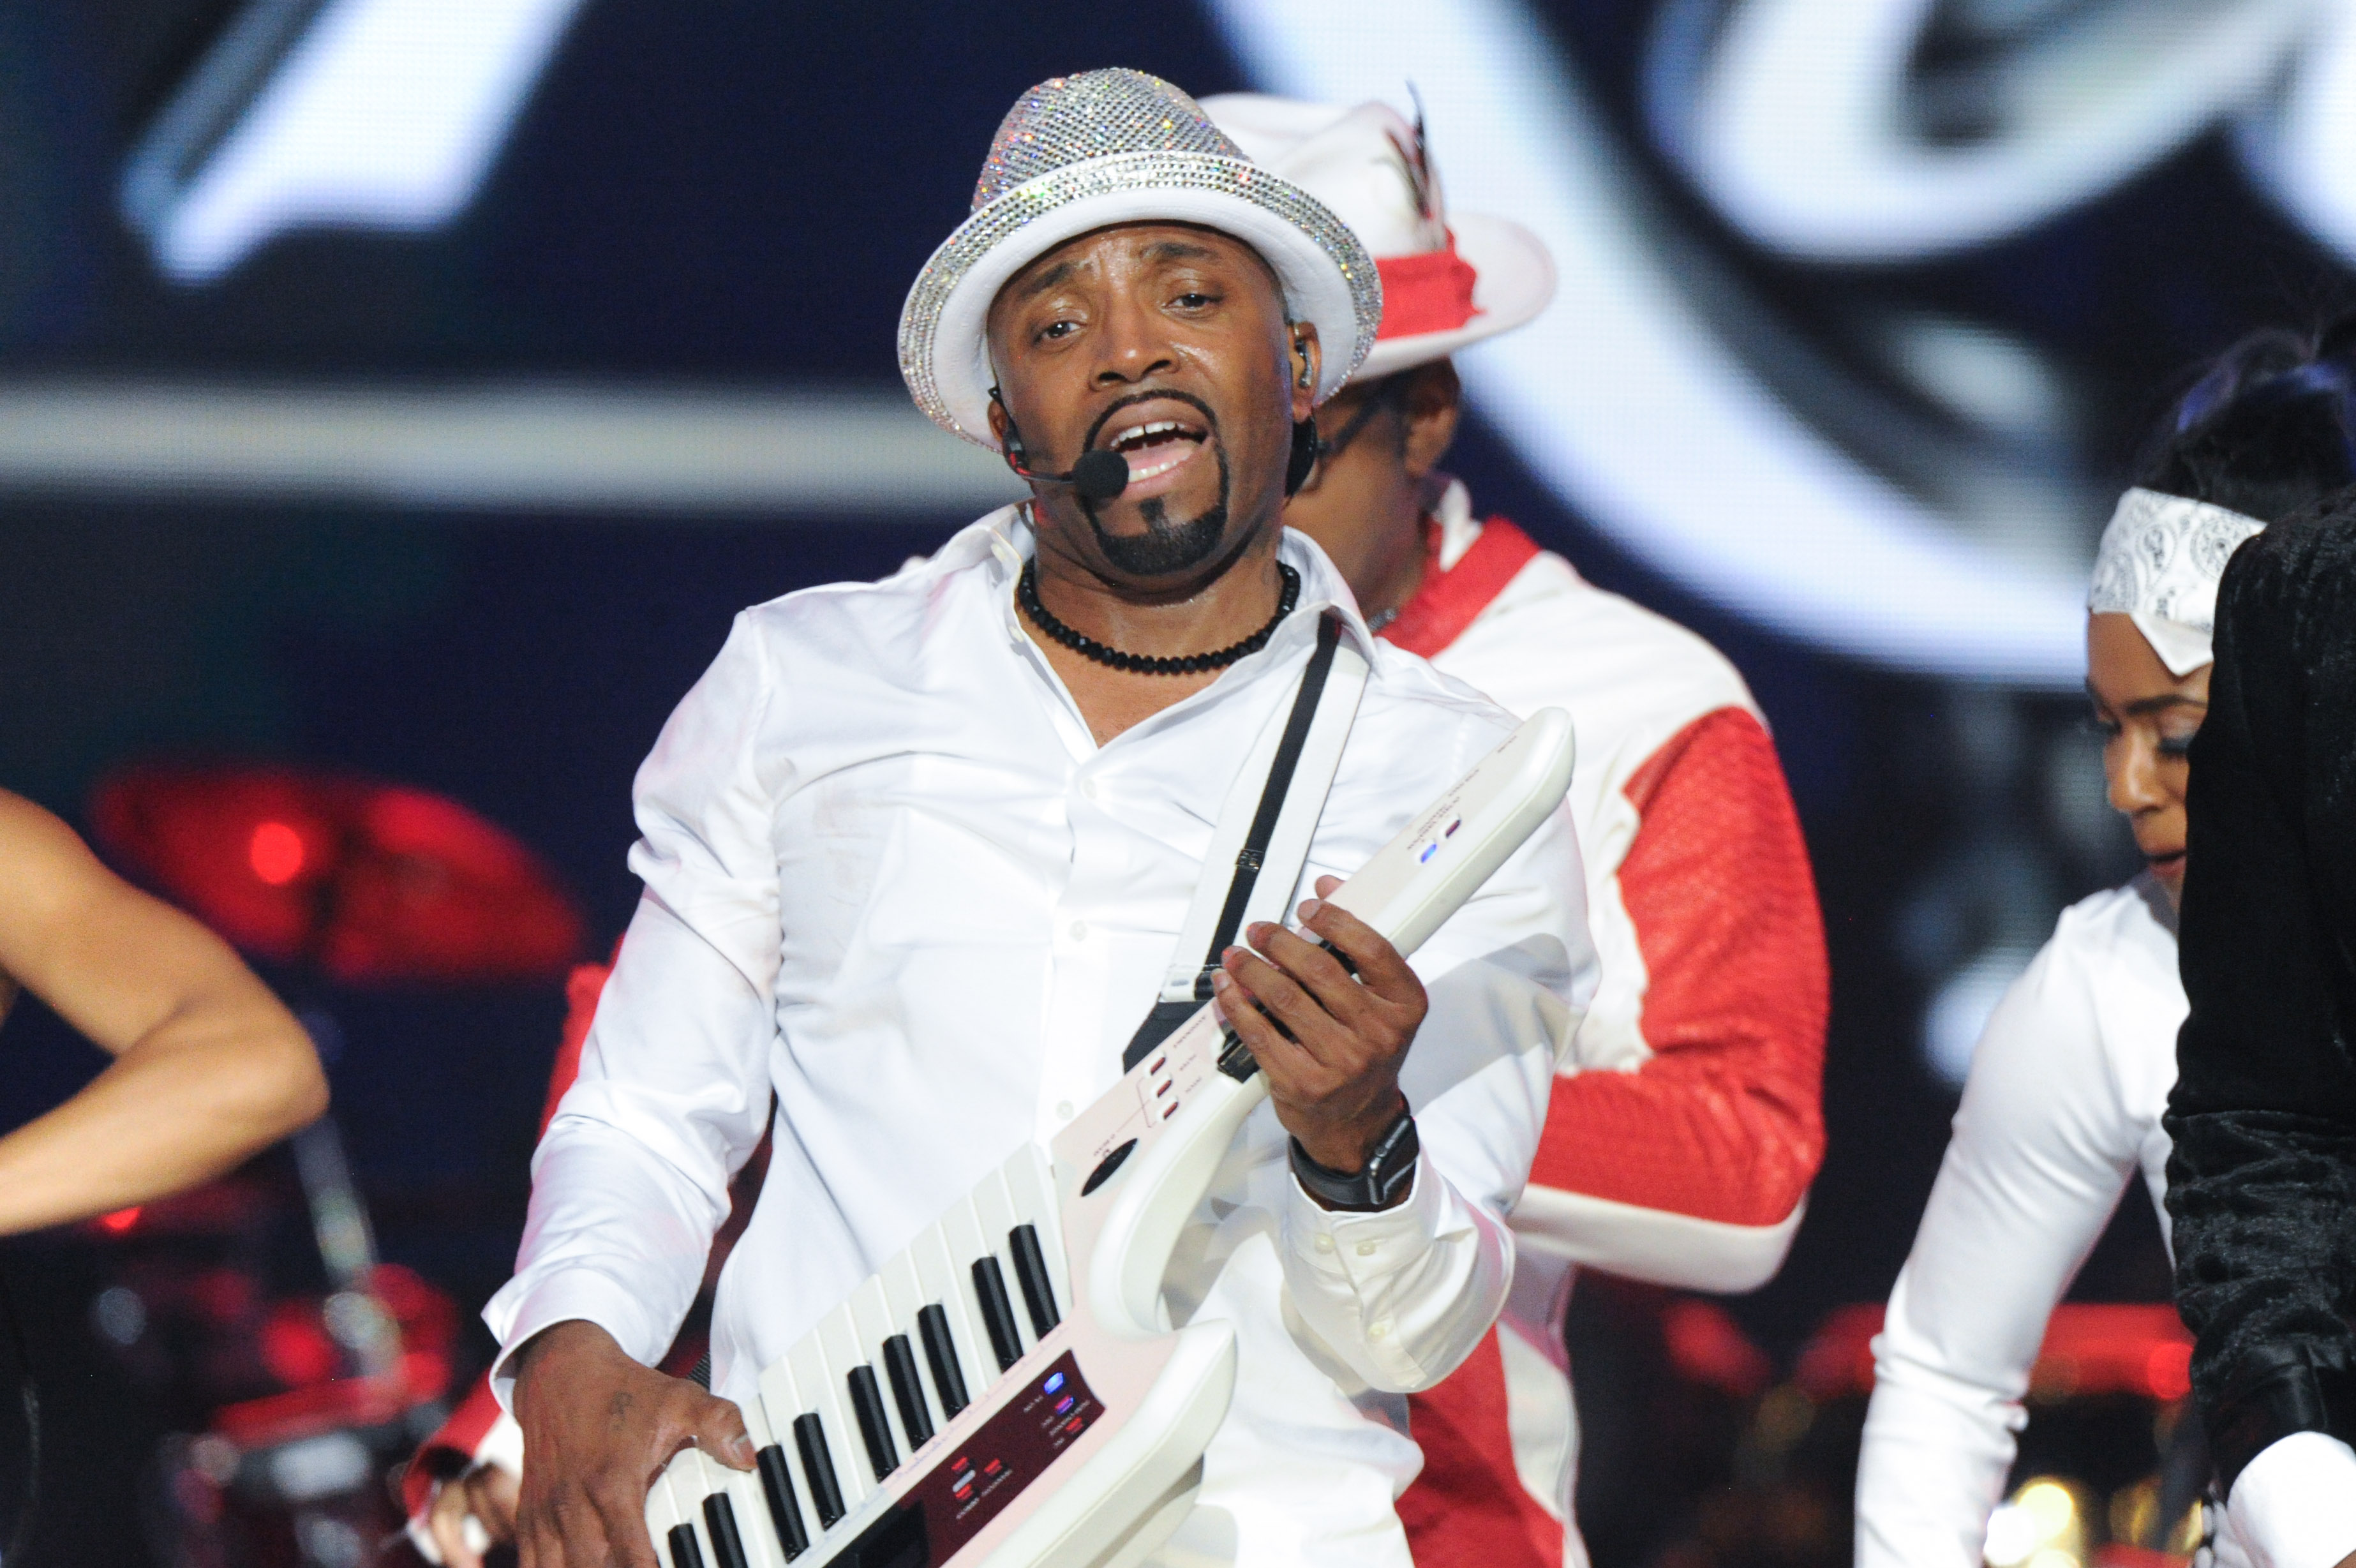 2016 Soul Train Music Awards at The Orleans Arena - Performances and Show